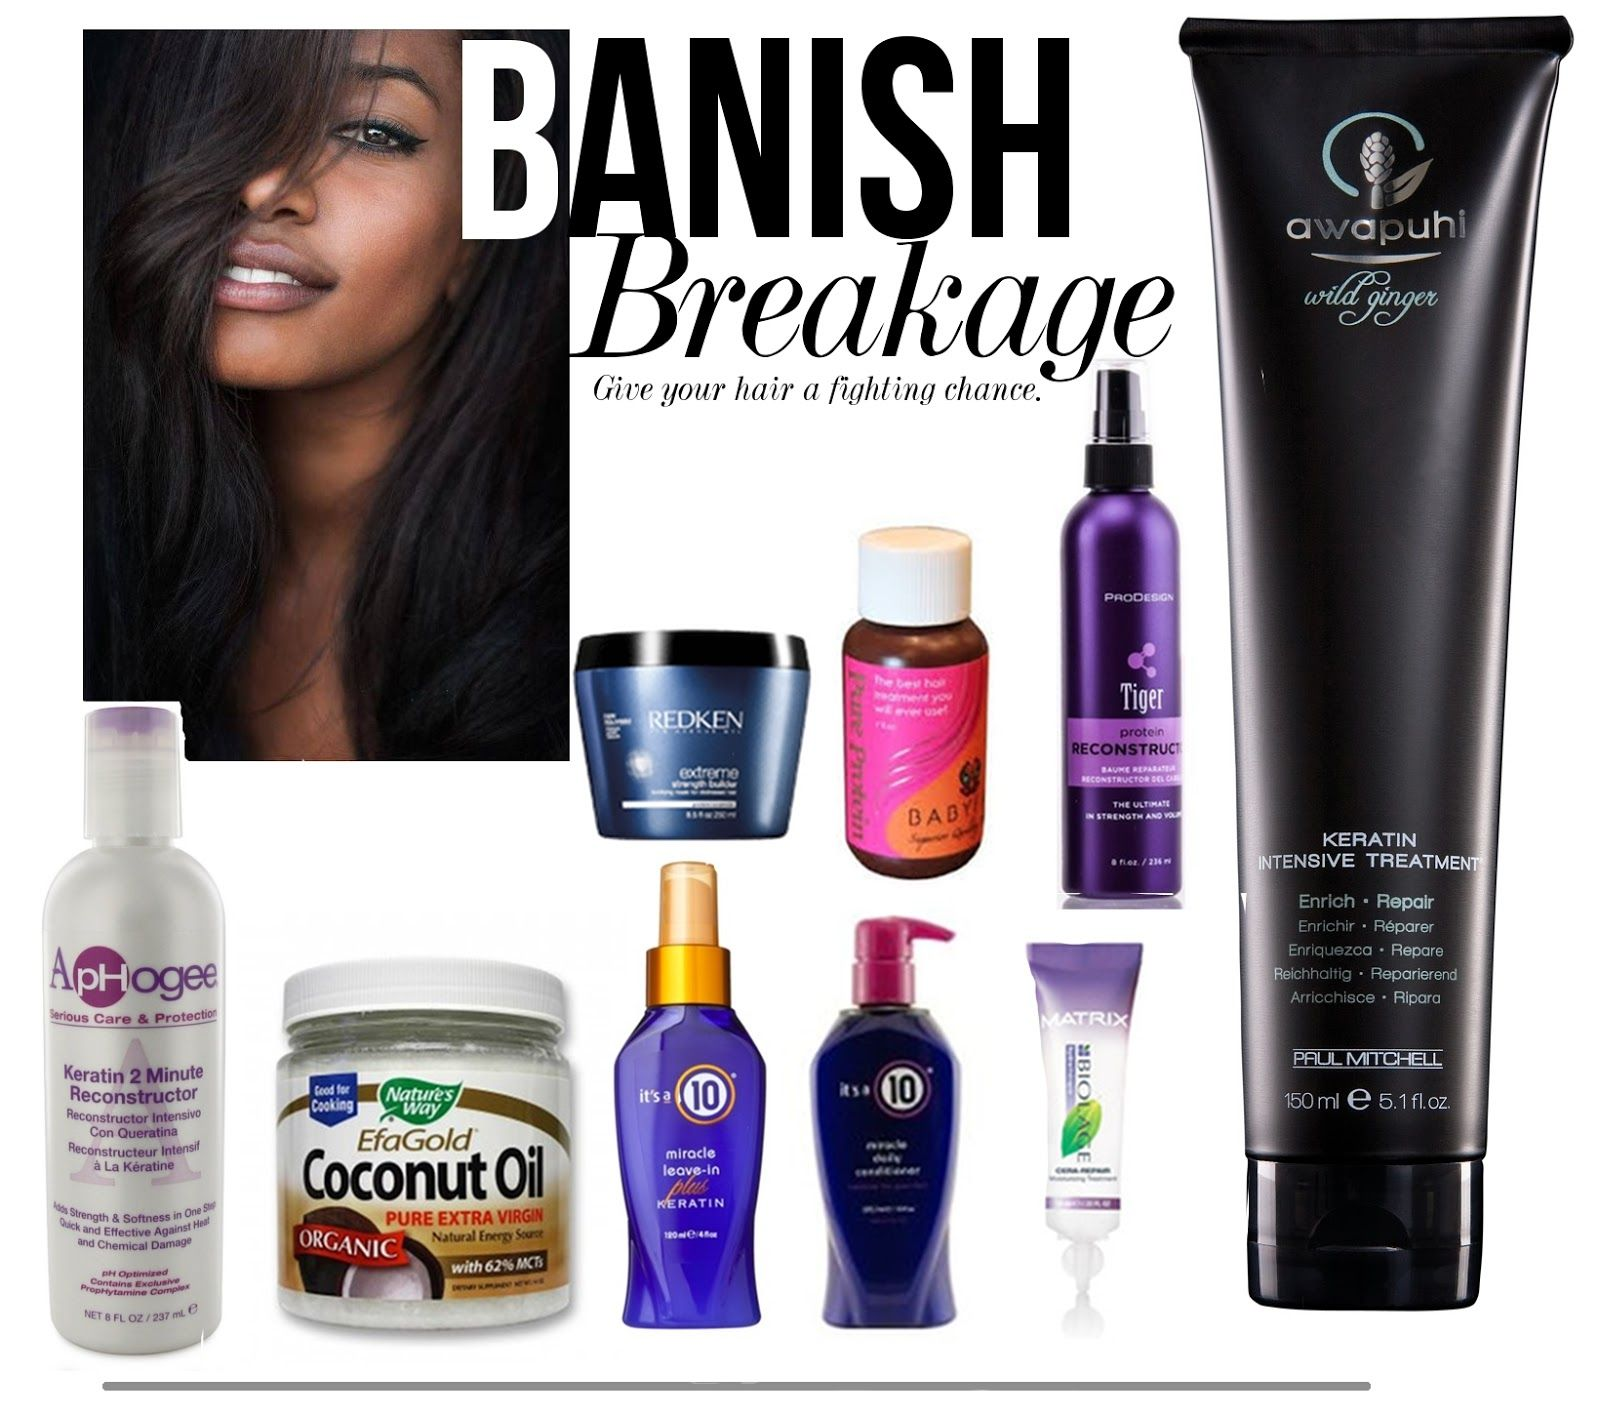 Relaxed Hair Health Products that help to banish breakage